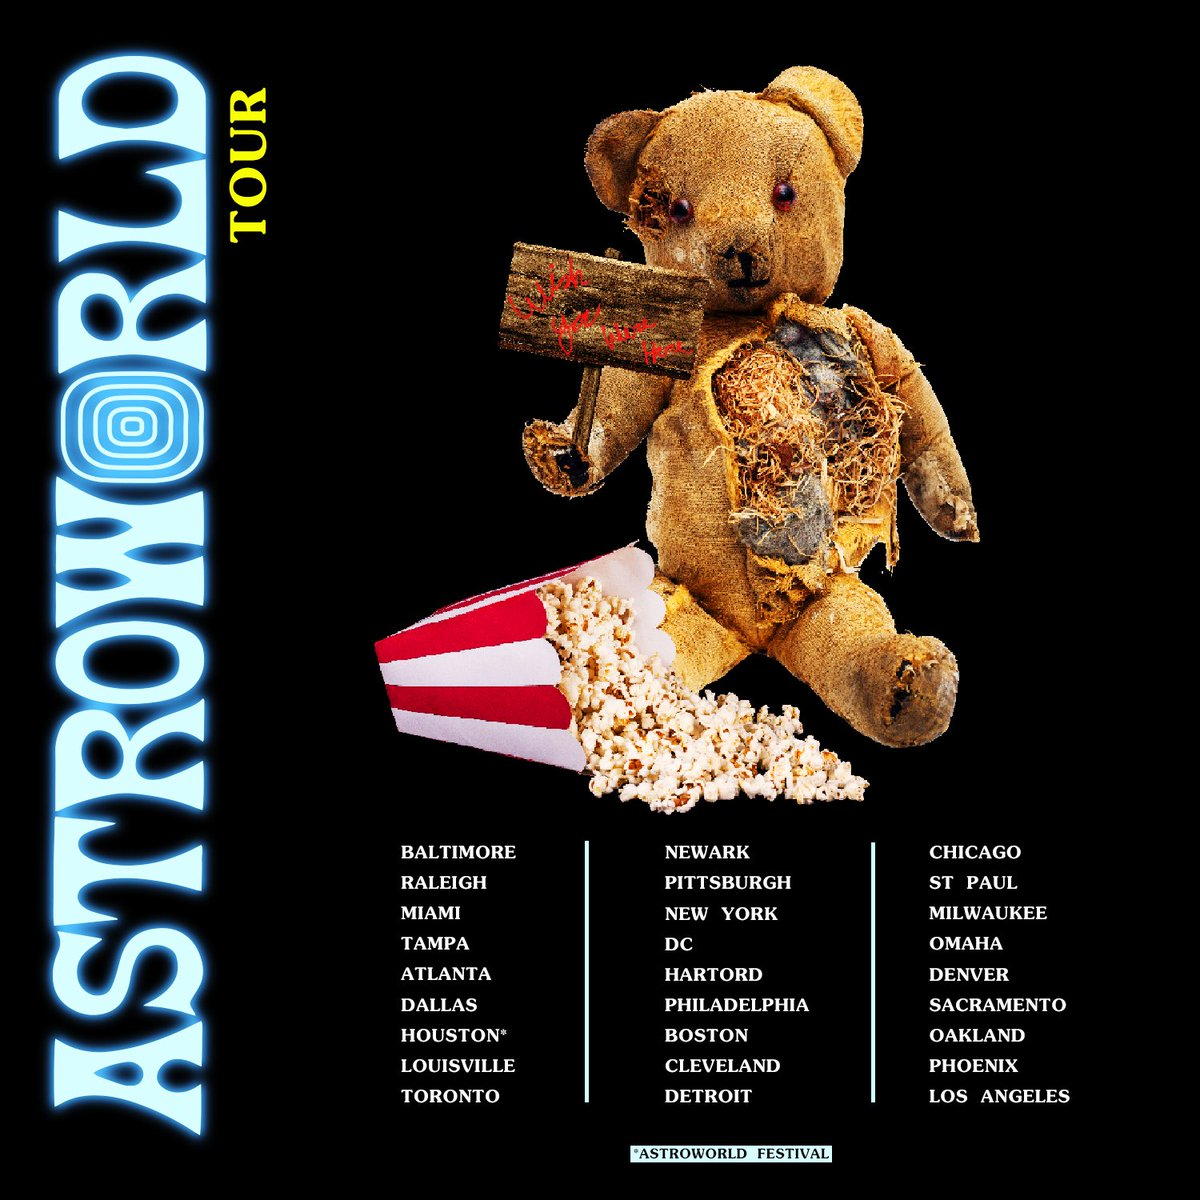 ASTROWORLD: WISH YOU WERE HERE TOUR !! PULLING UP EVERYWHERE THIS IS LEG ONE EUROPE AND OTHER CITIES COMING SOON !! 🎢 🍿🗺📍